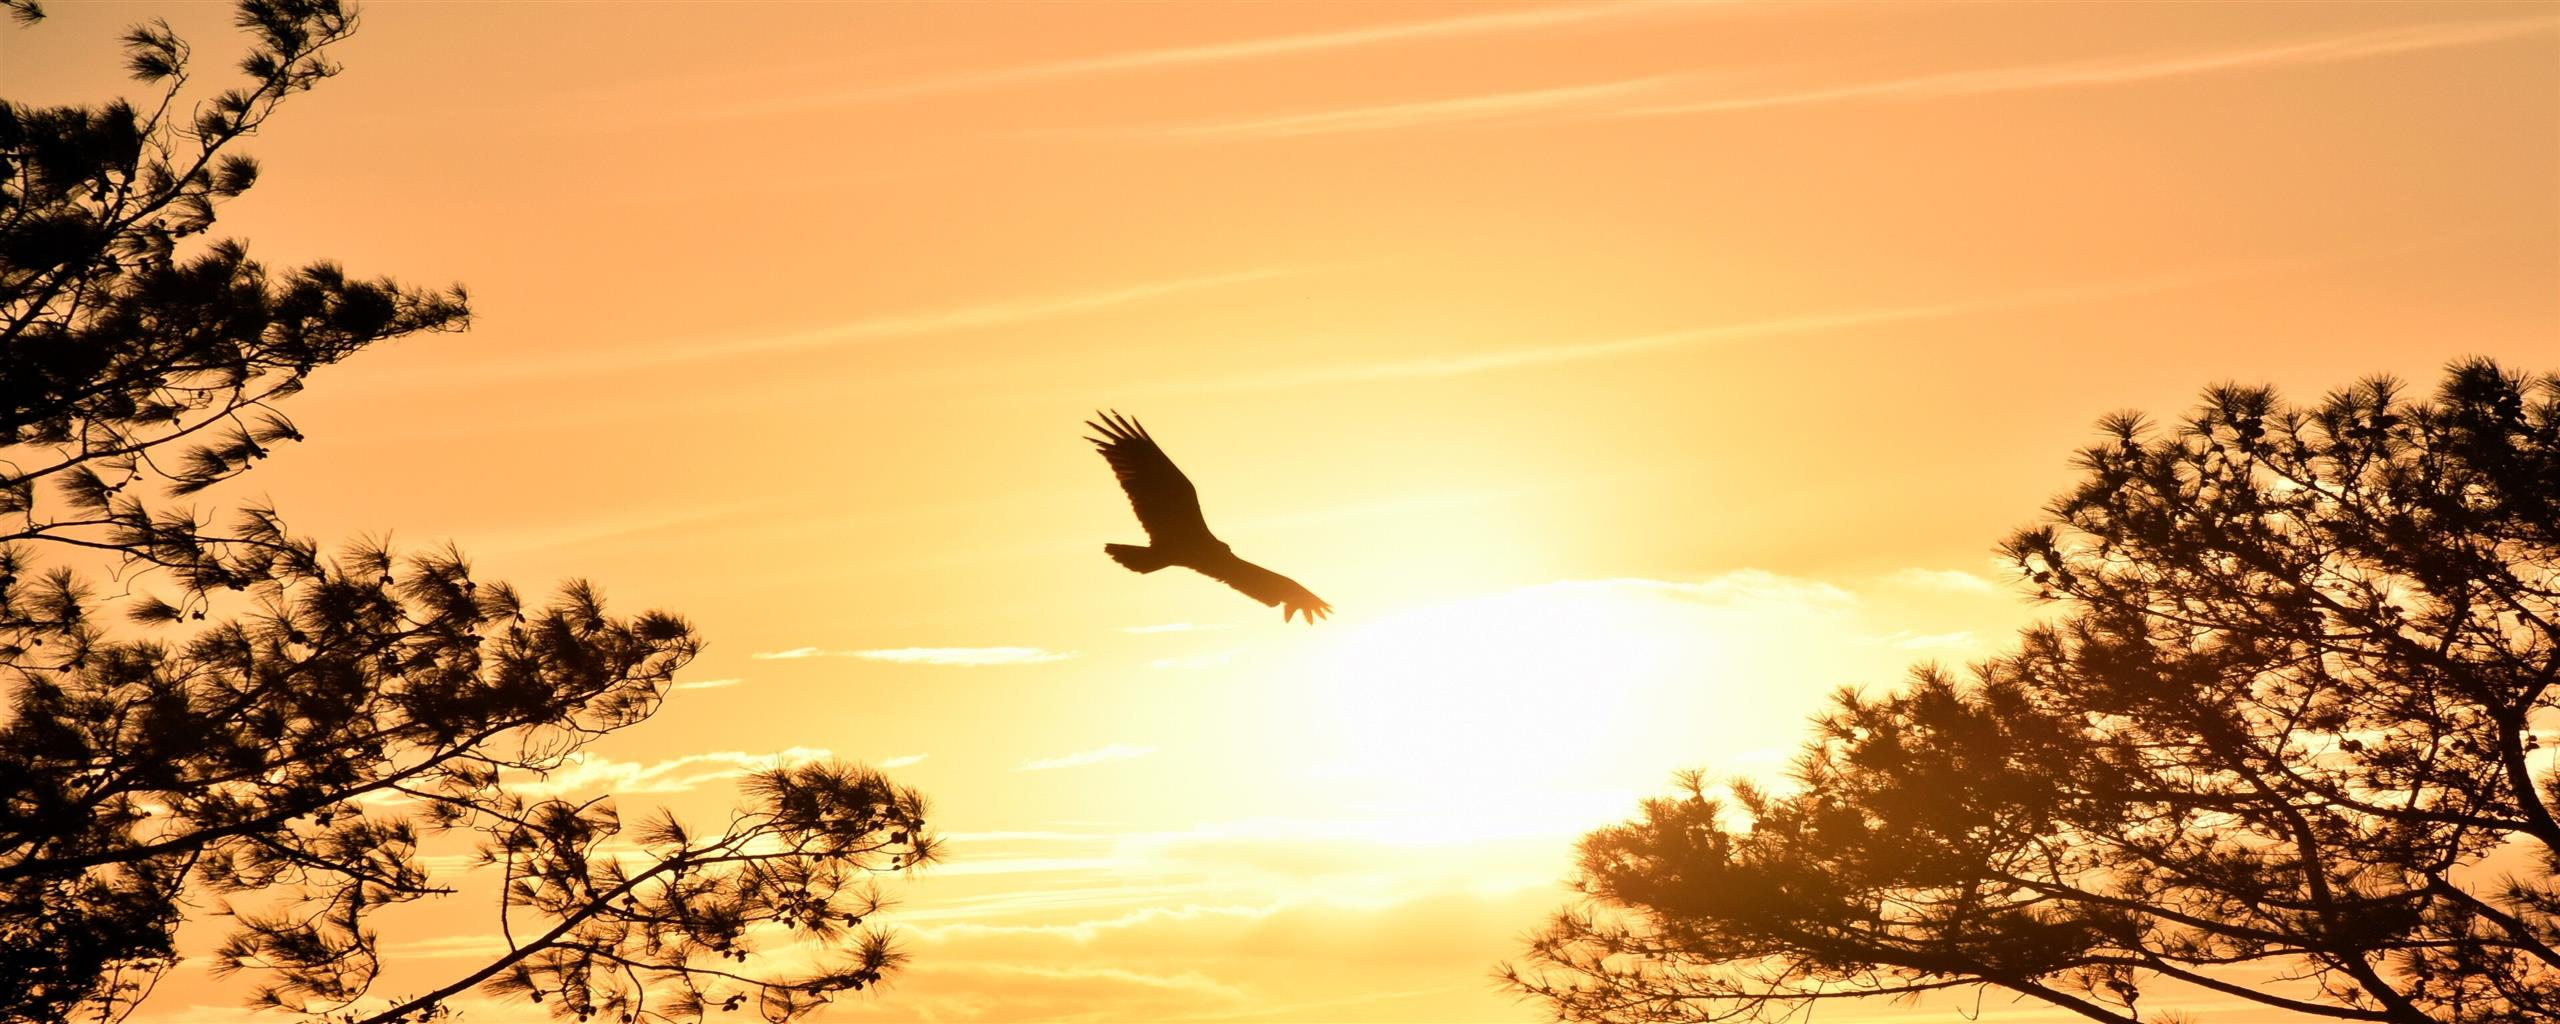 2560x1024 Eagle Flying in Sky During Sunset 4K Wallpapers